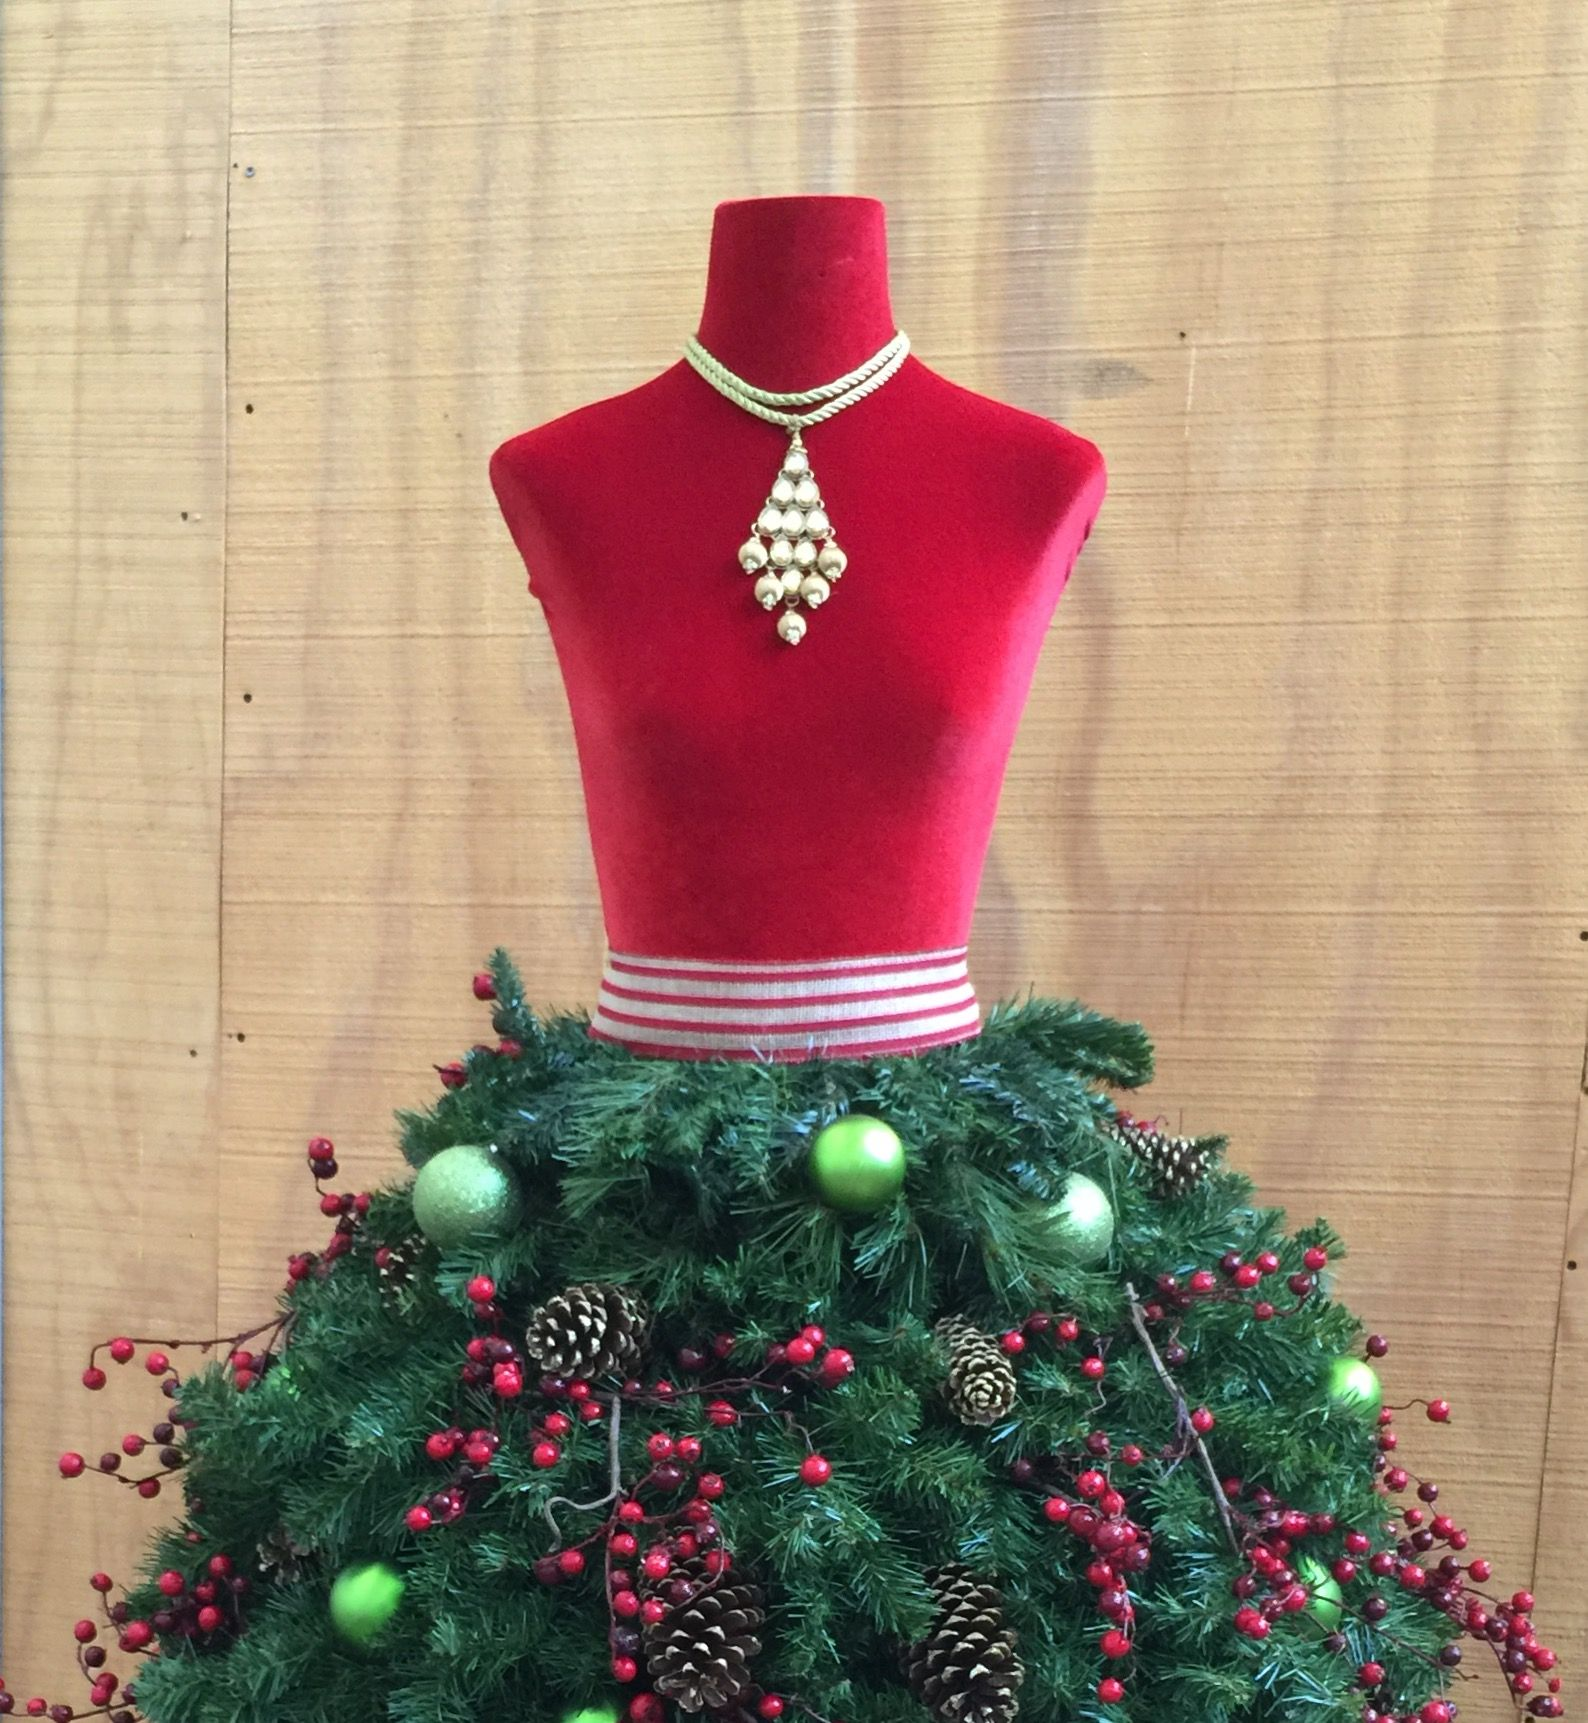 Christmas Tree Dress Form Tutorials for Crafters of All Levels ...